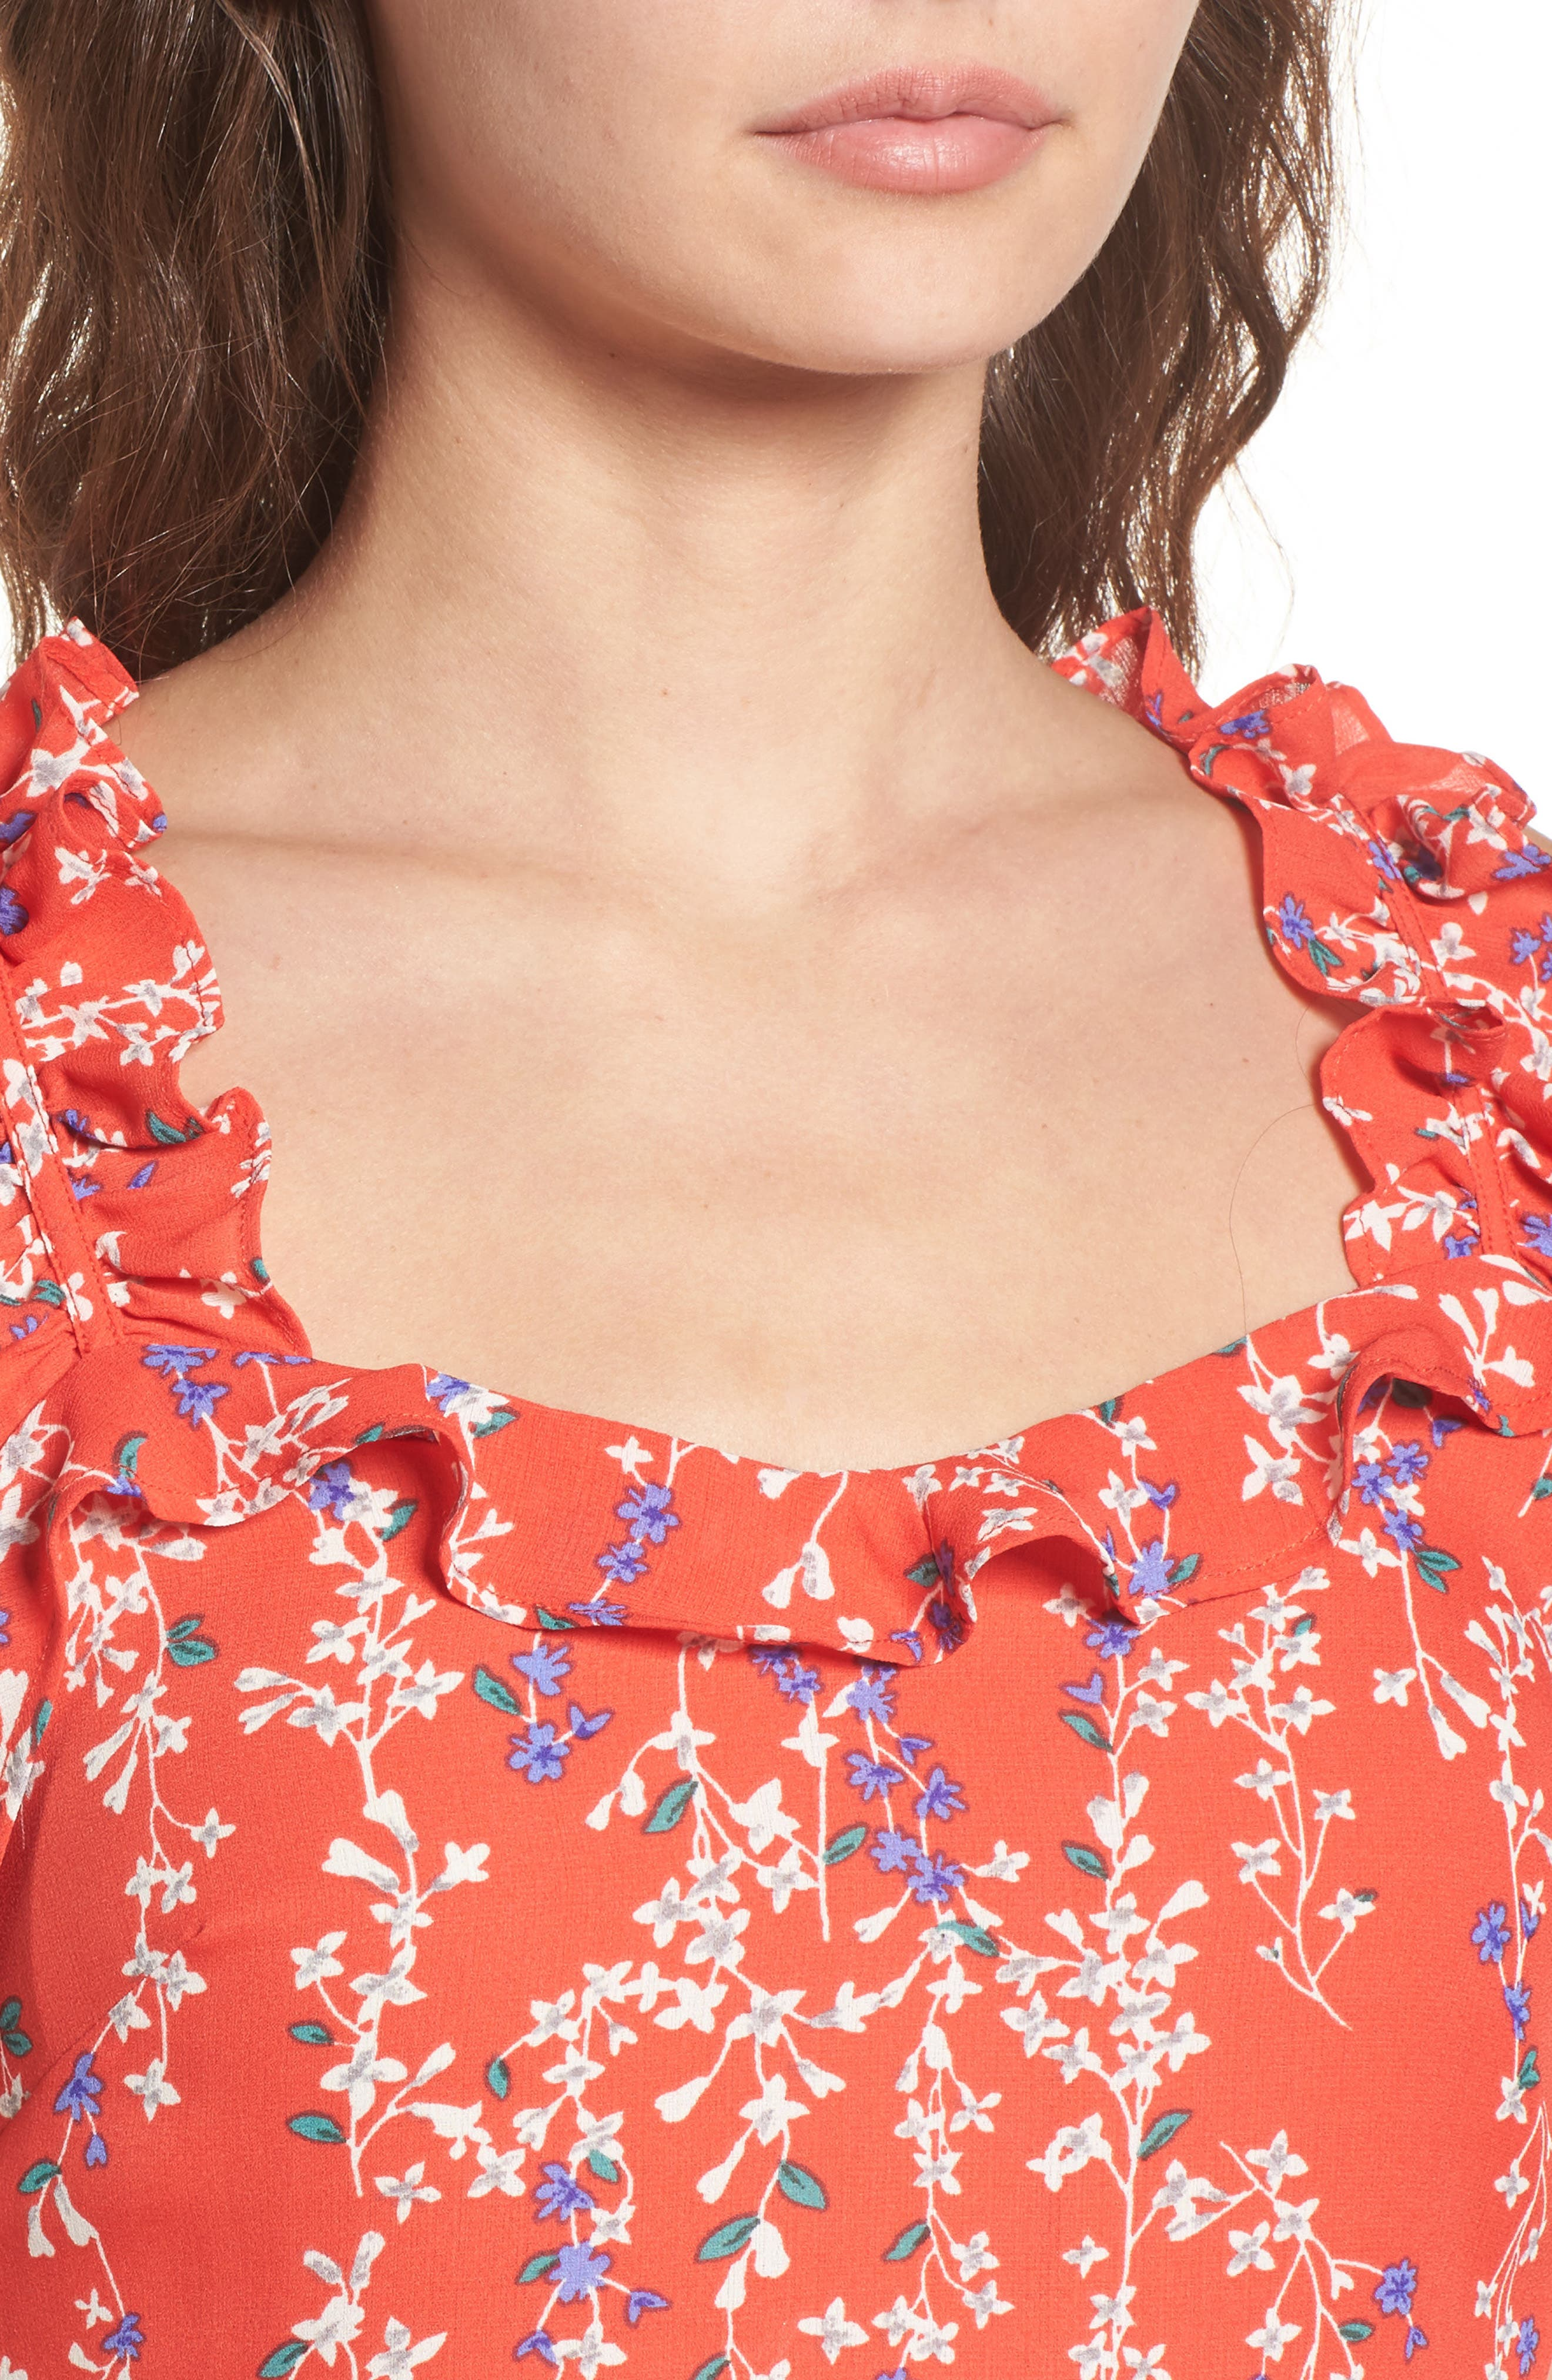 Floral Ruffle Crop Top,                             Alternate thumbnail 6, color,                             Red Floral